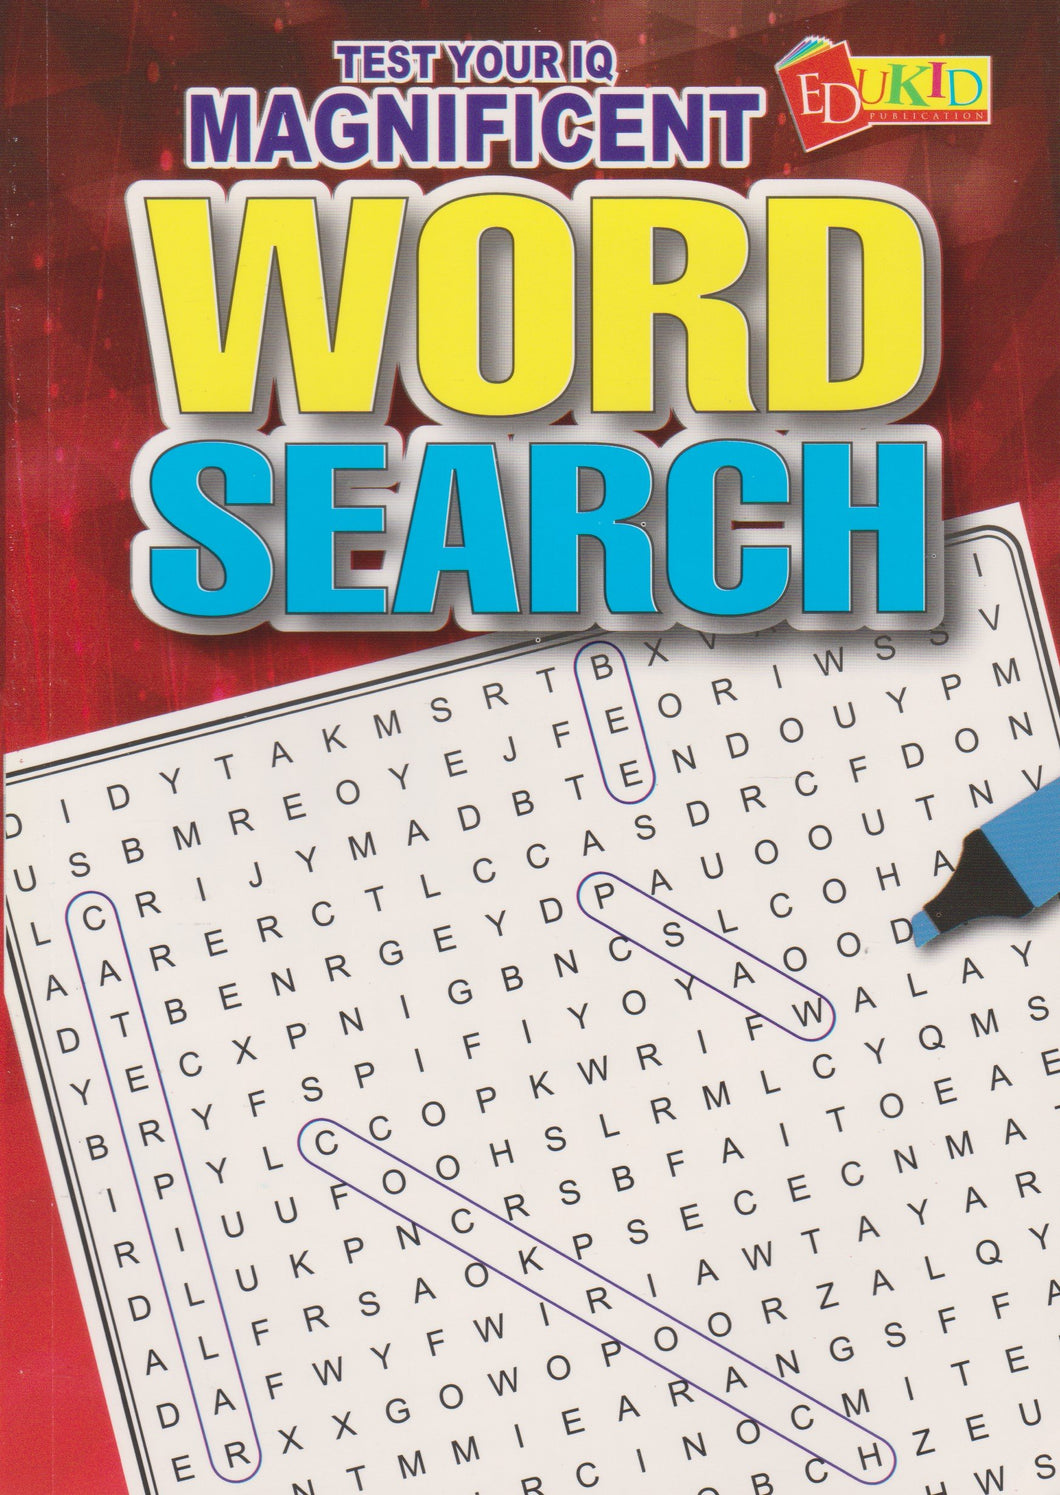 Edukid: Test Your IQ: Magnificent Word Search